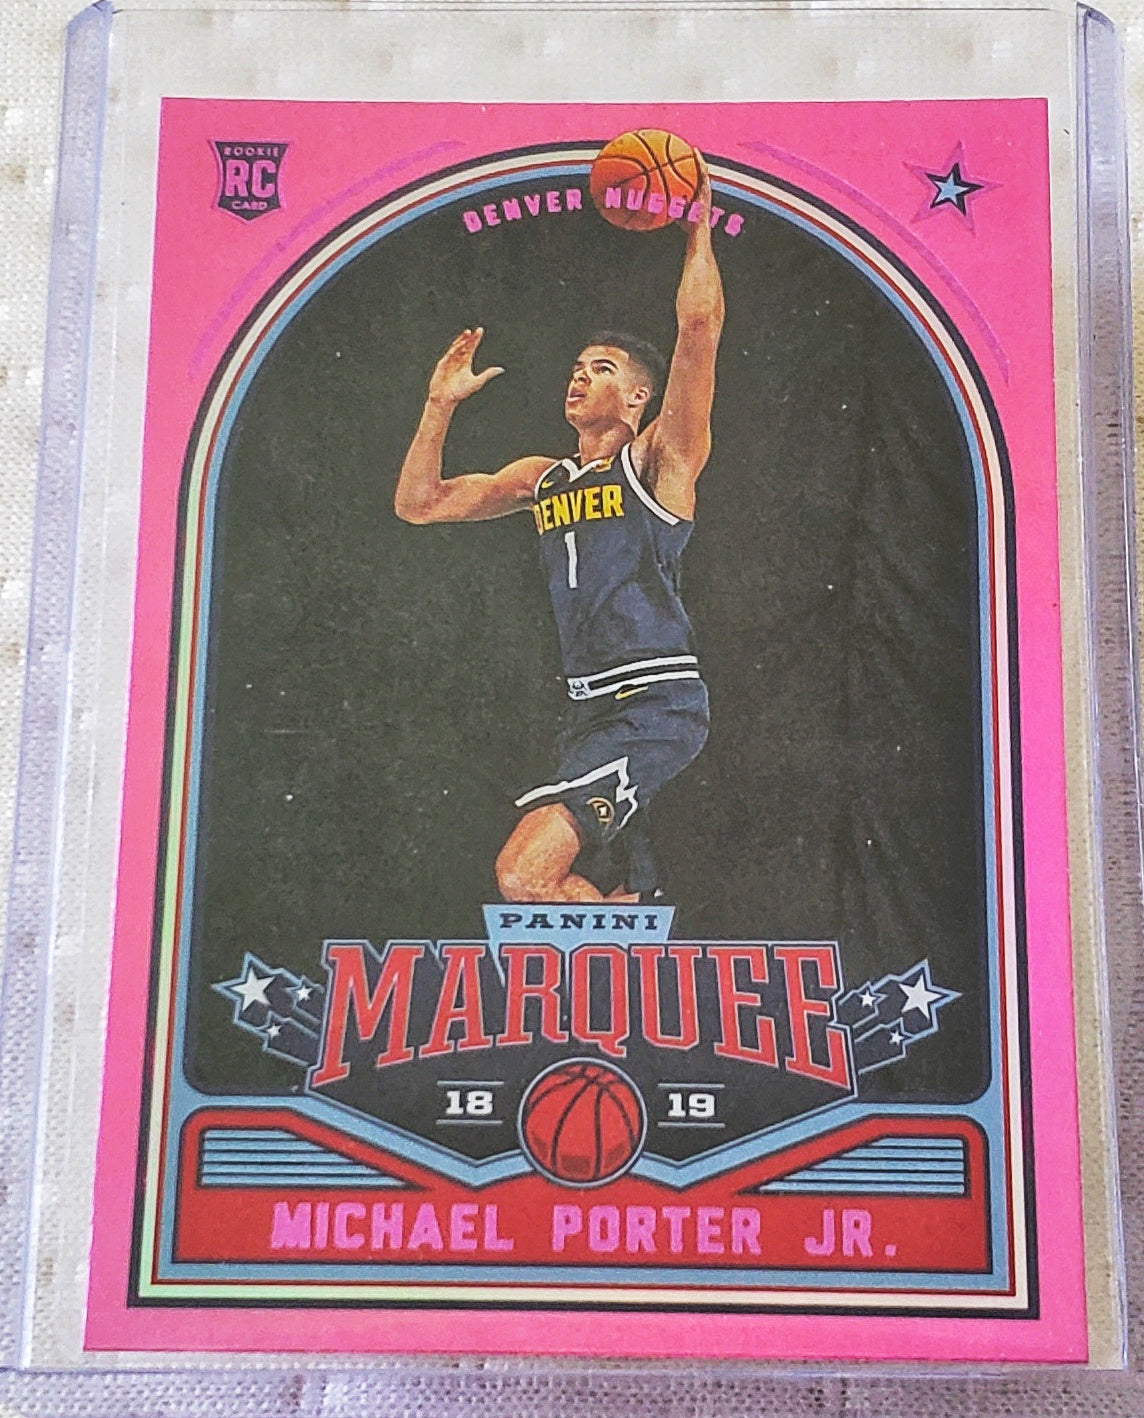 2018/19 Panini NBA Chronicles - Michael Porter Jr Pink Marquee RC